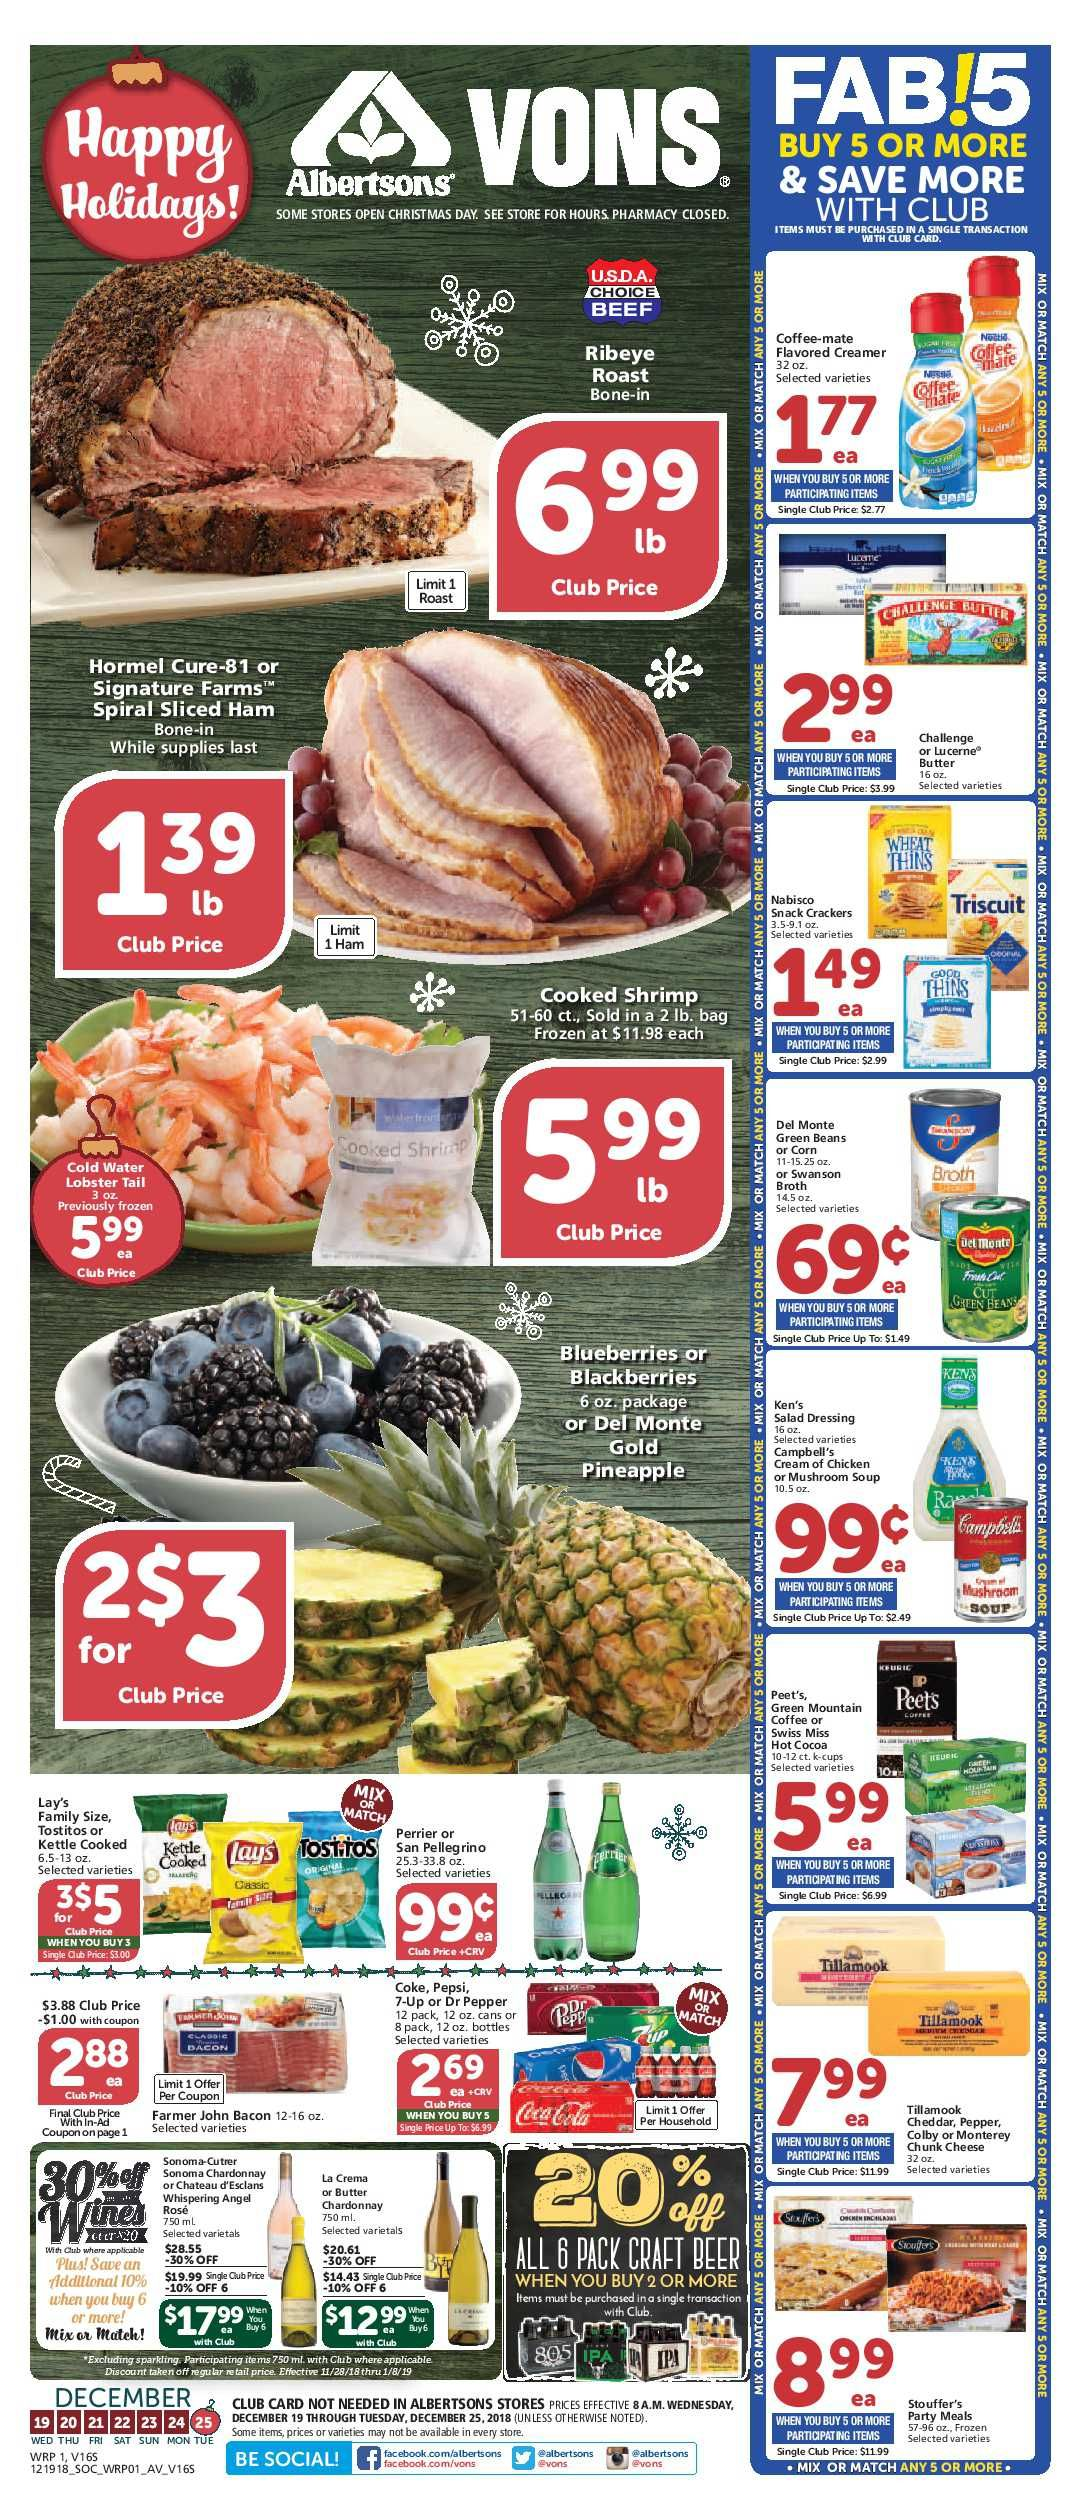 Vons Weekly Ad Flyer 03/11/20 03/17/20 Grocery, Weekly